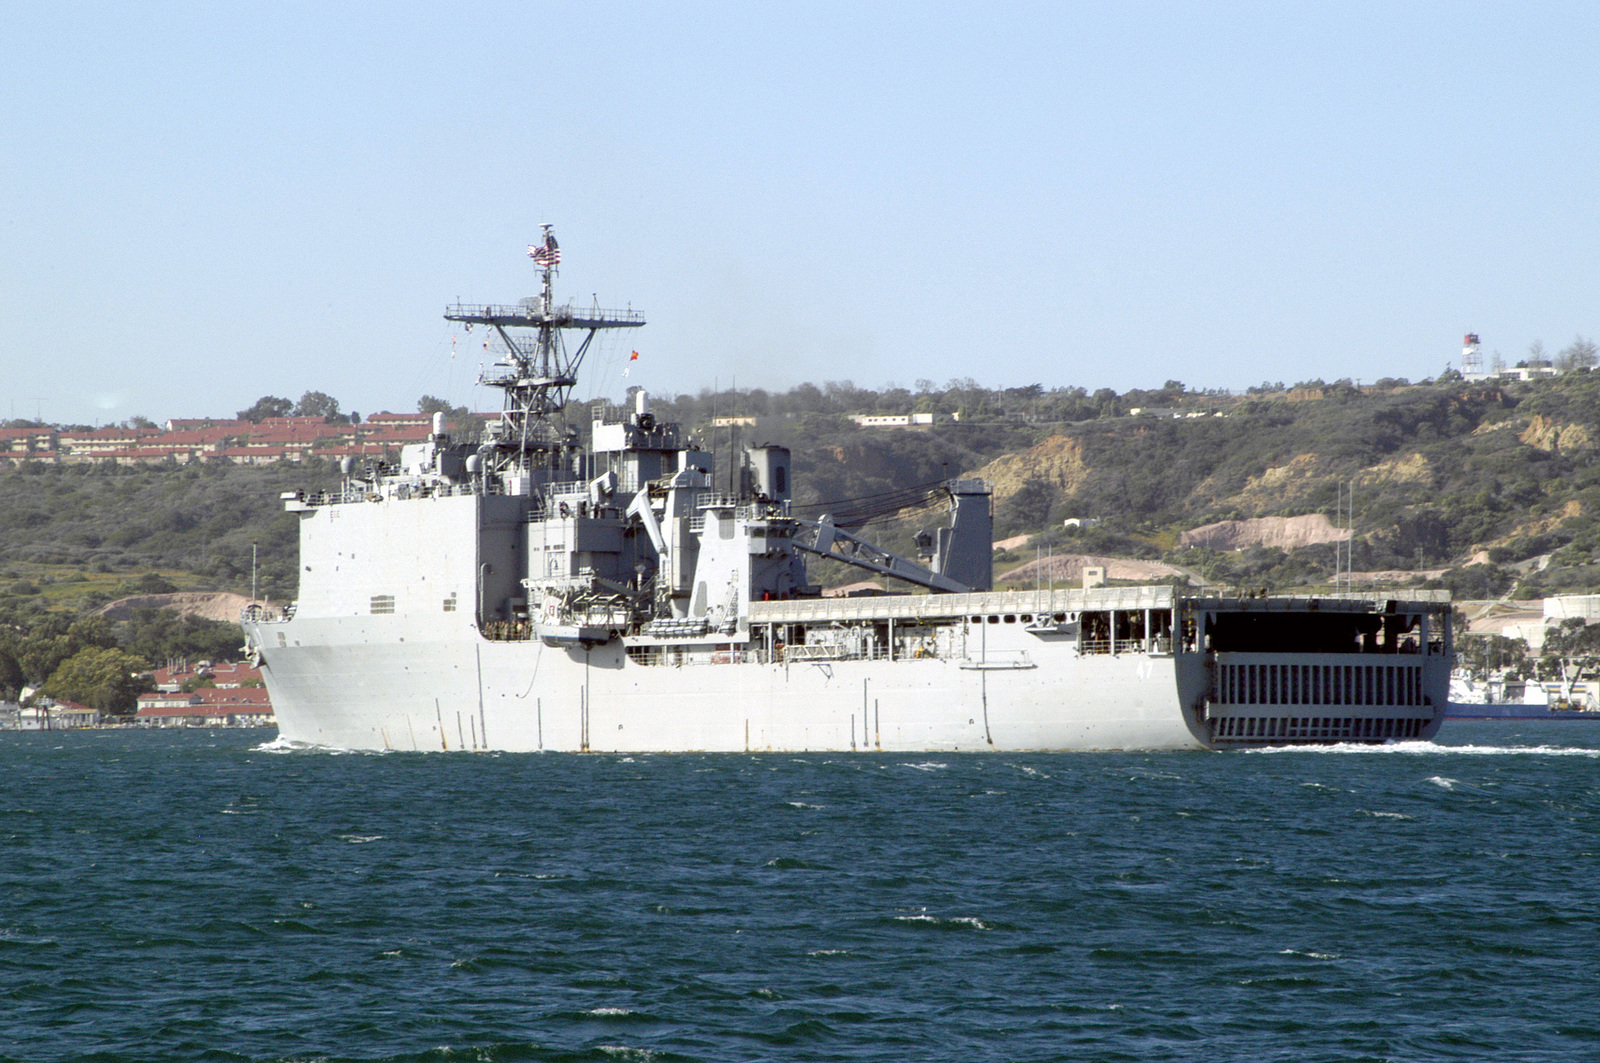 Quarter port stern view of the US Navy (USN) WHIDBEY ISLAND CLASS; DOCK LANDING SHIP, USS RUSHMORE (LSD 47), underway in the Harbor at San Diego, California (CA), as the ship departs for a scheduled six-month deployment